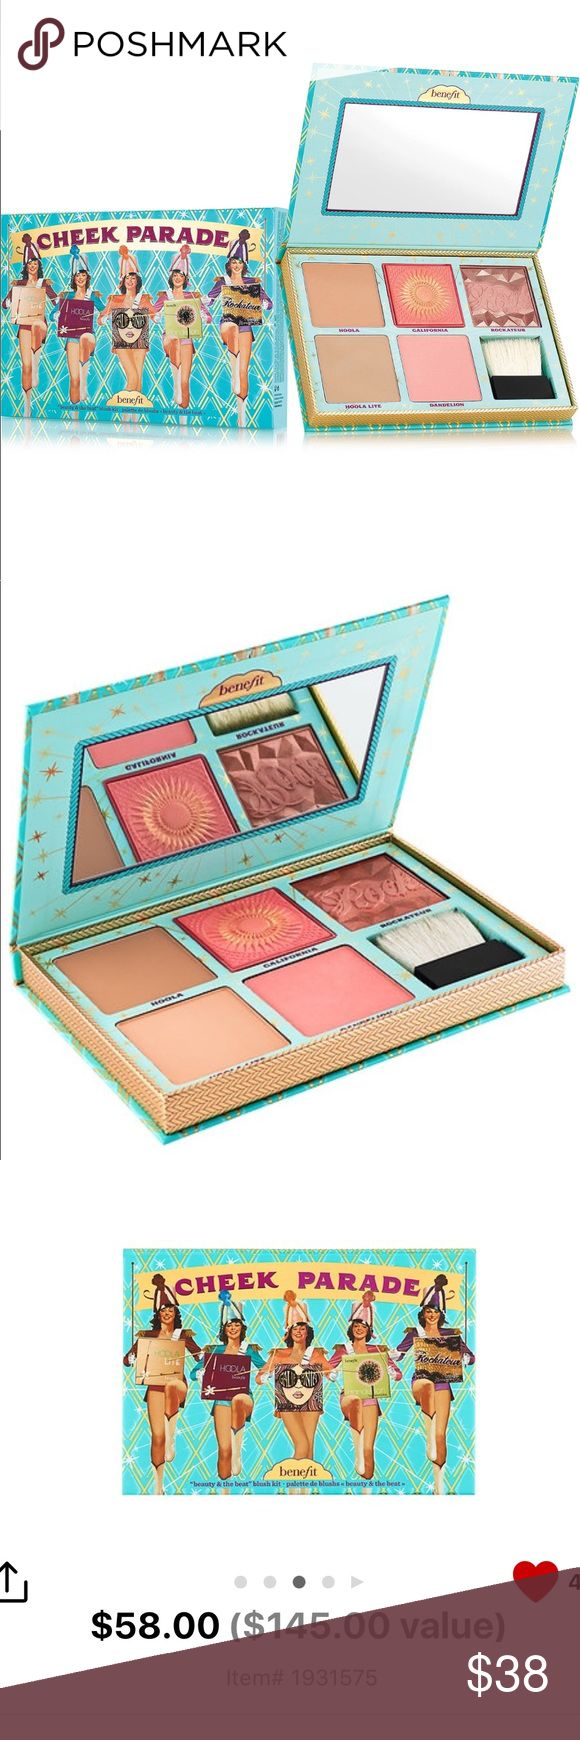 Benefit Cheek Parade Blushes & Bronzers New Benefit Cheek Parade Blushes & Bronzers New Authentic. I love this palette. This is the best combination Benefit has had in these. Galfornia is super pretty. You get this for a little over one full Size items price. Great deal. Sephora Makeup Blush